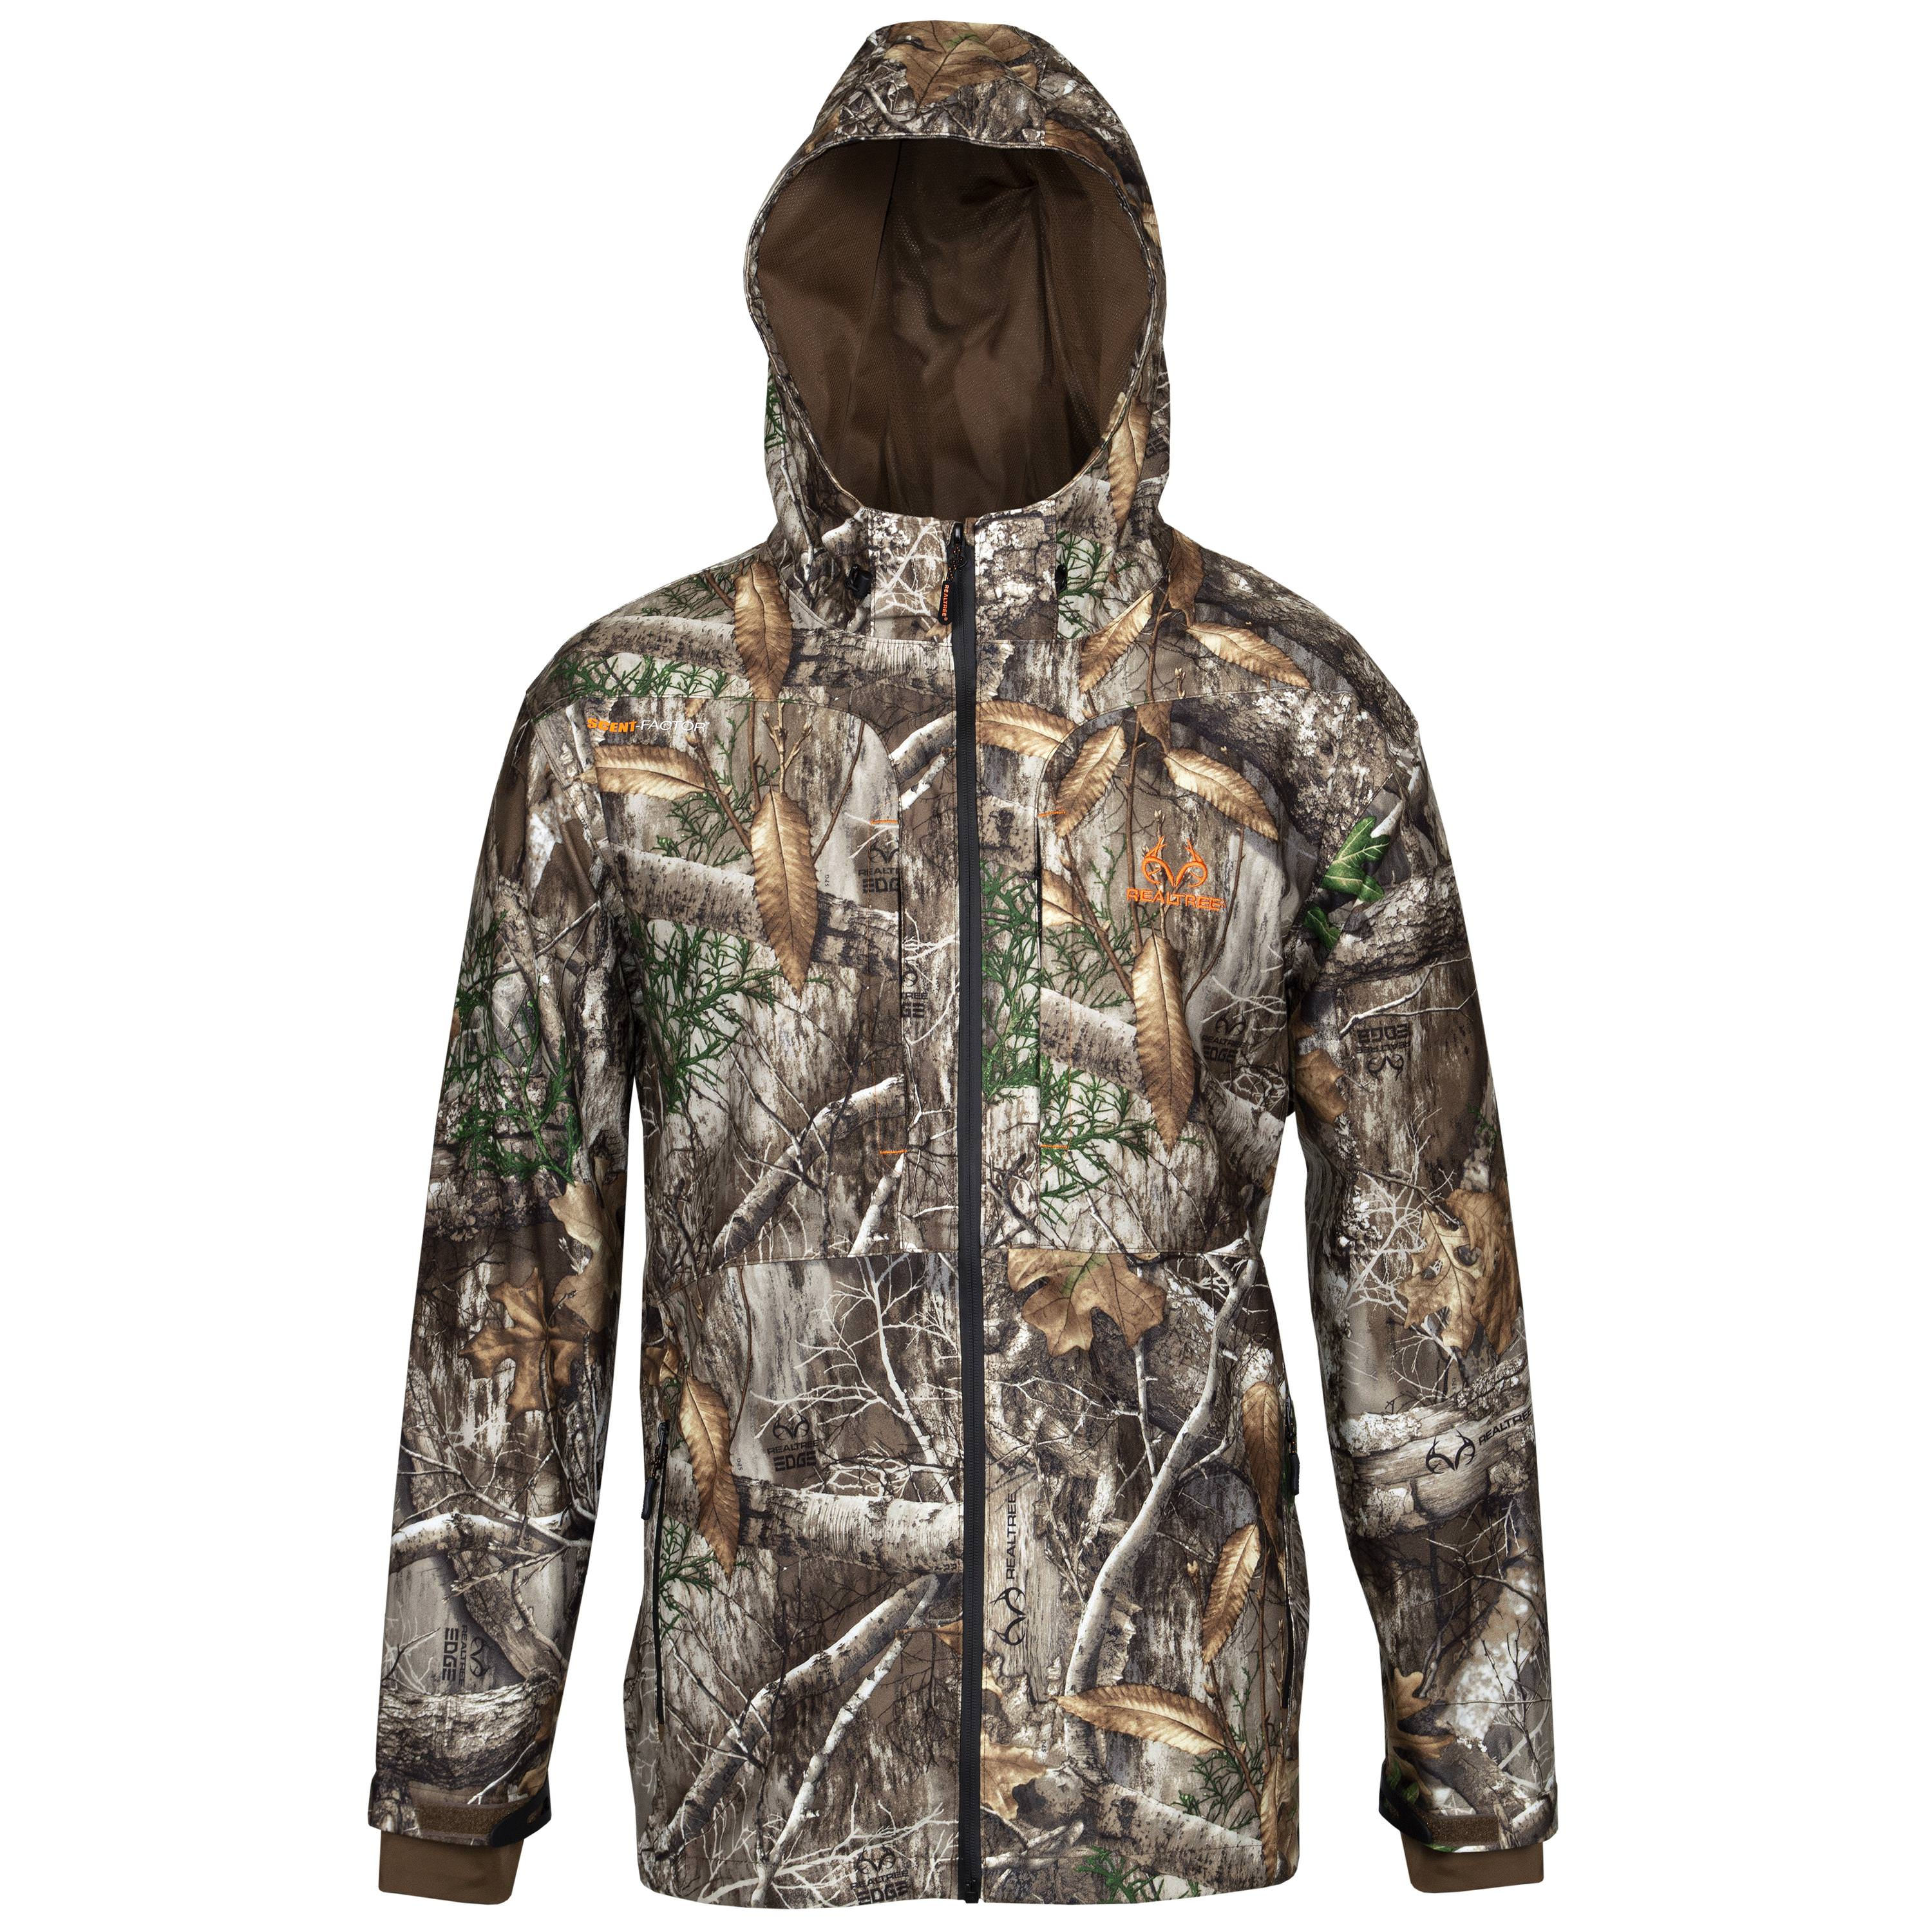 MENS CAMO SCENT CONTROL HUNTING JACKET